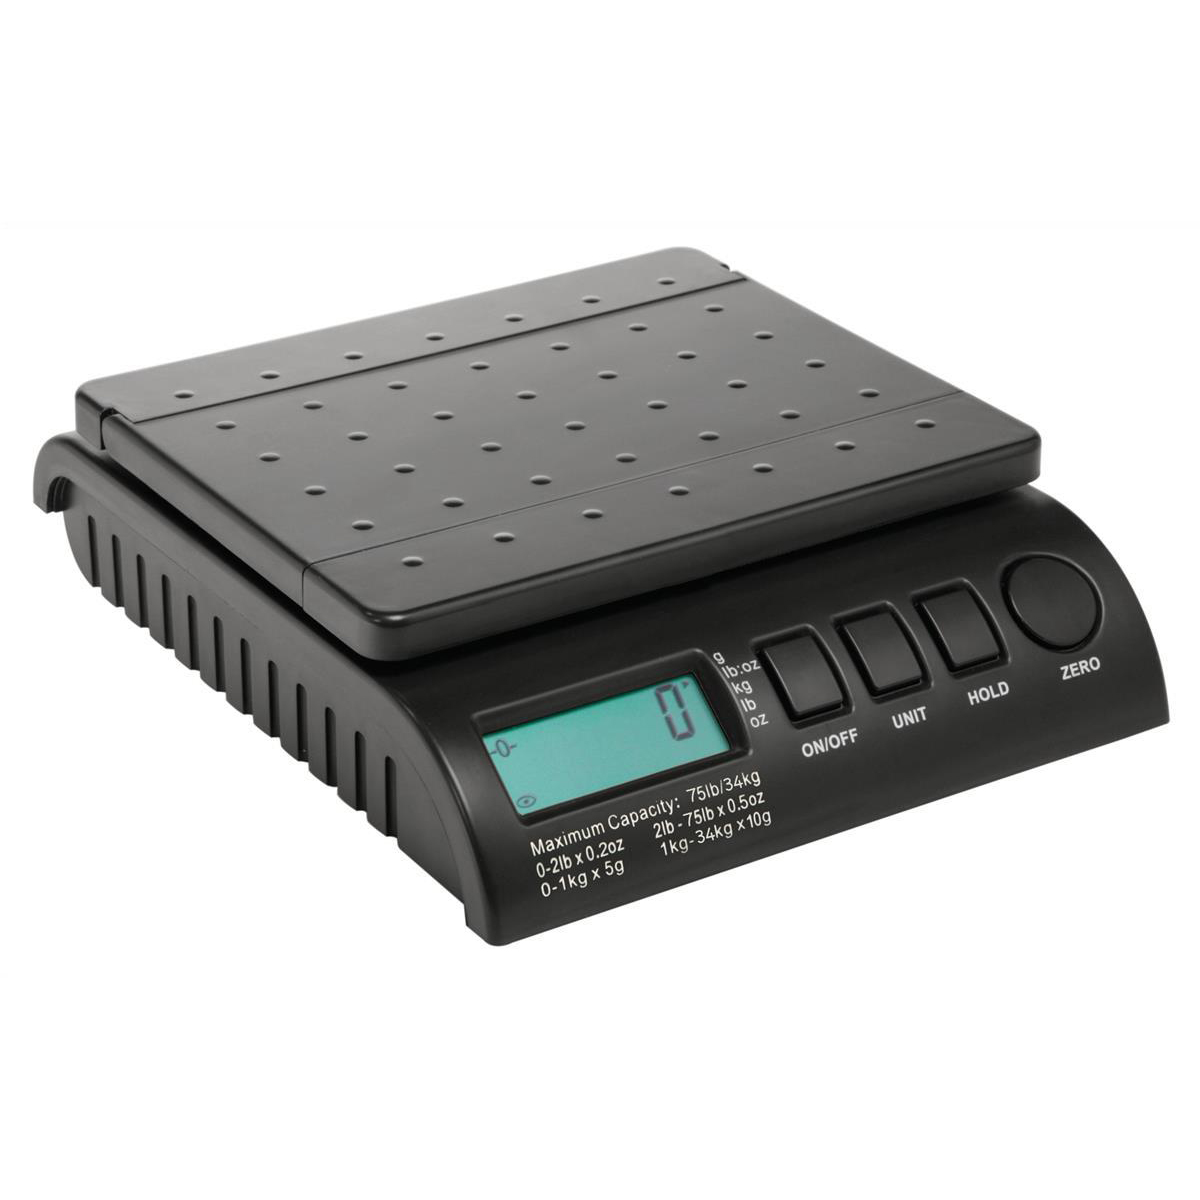 Scales Postship Multi Purpose Scale 5g or 10g Increments Capacity 34kg LCD Display Black Ref PS3400B